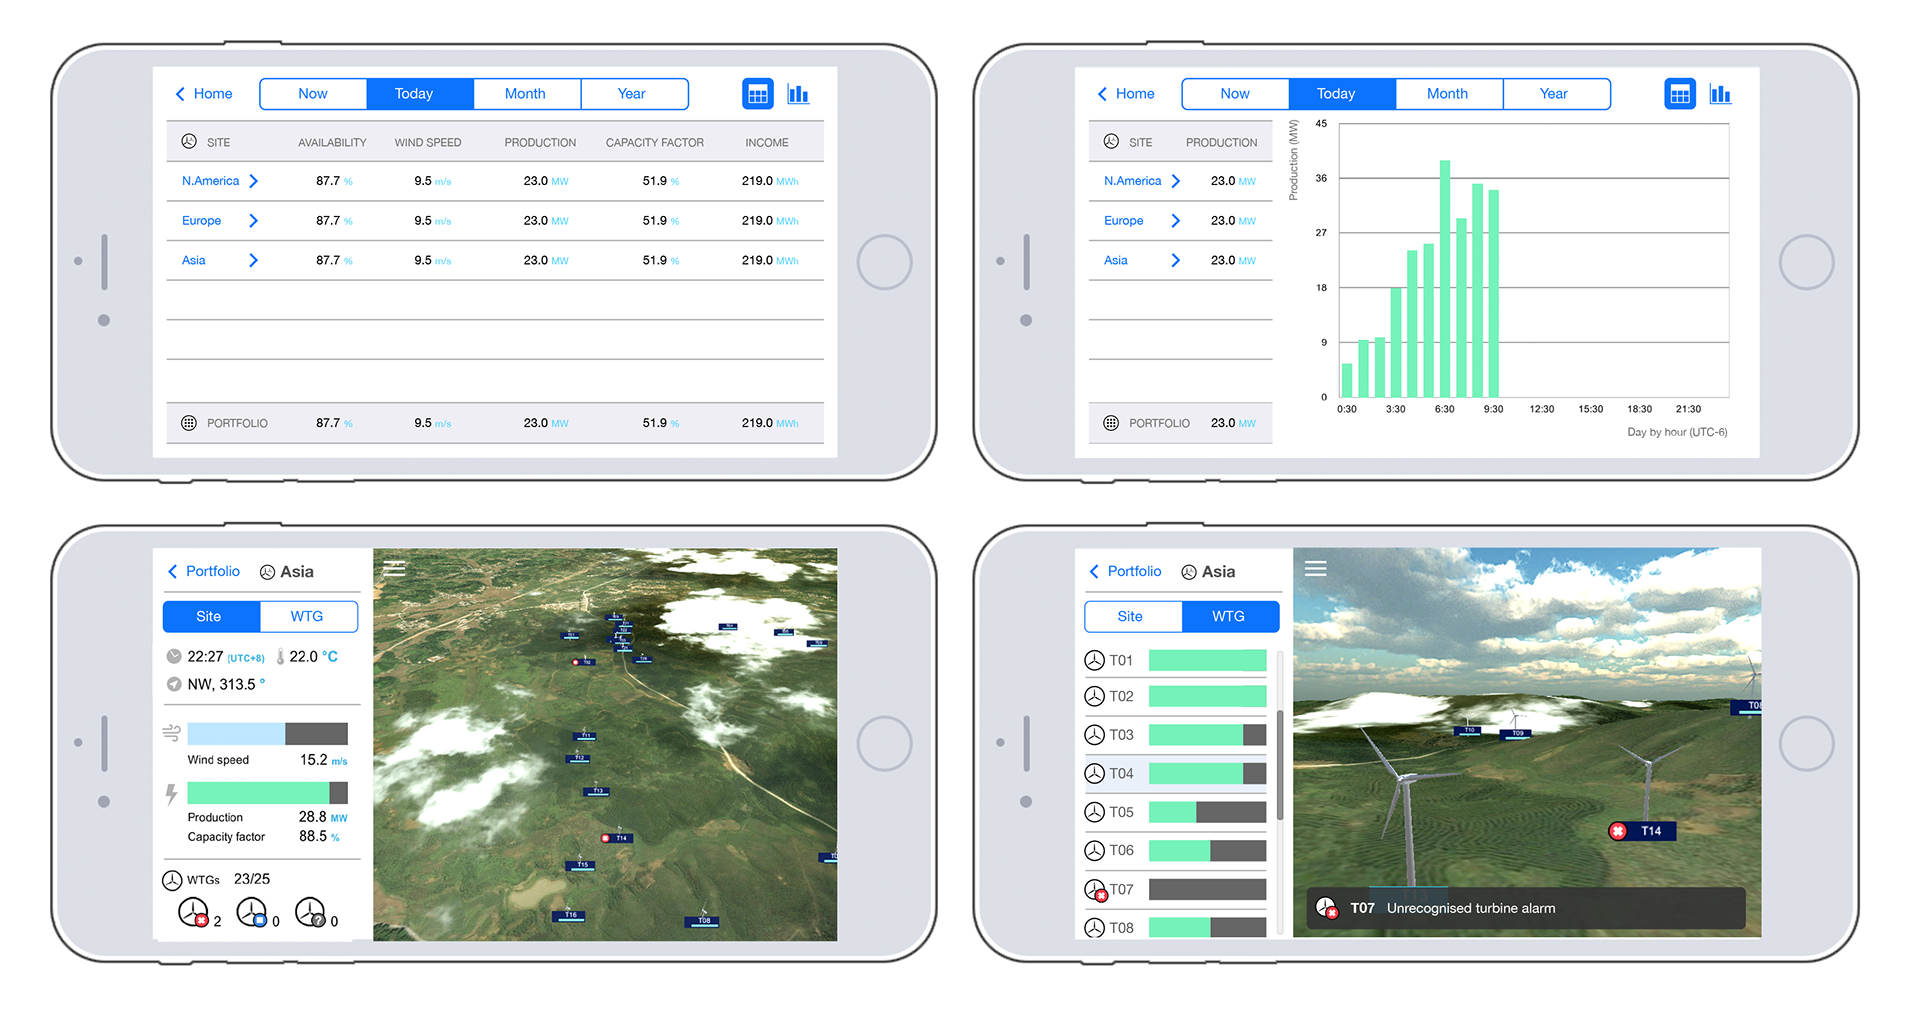 Screen grabs from the app's second release. During development, DNV GL released a corporate style guide, which whilst incomplete, I was able to use and extrapolate from to give the app a visual design which would be appropriate and match with other company applications.